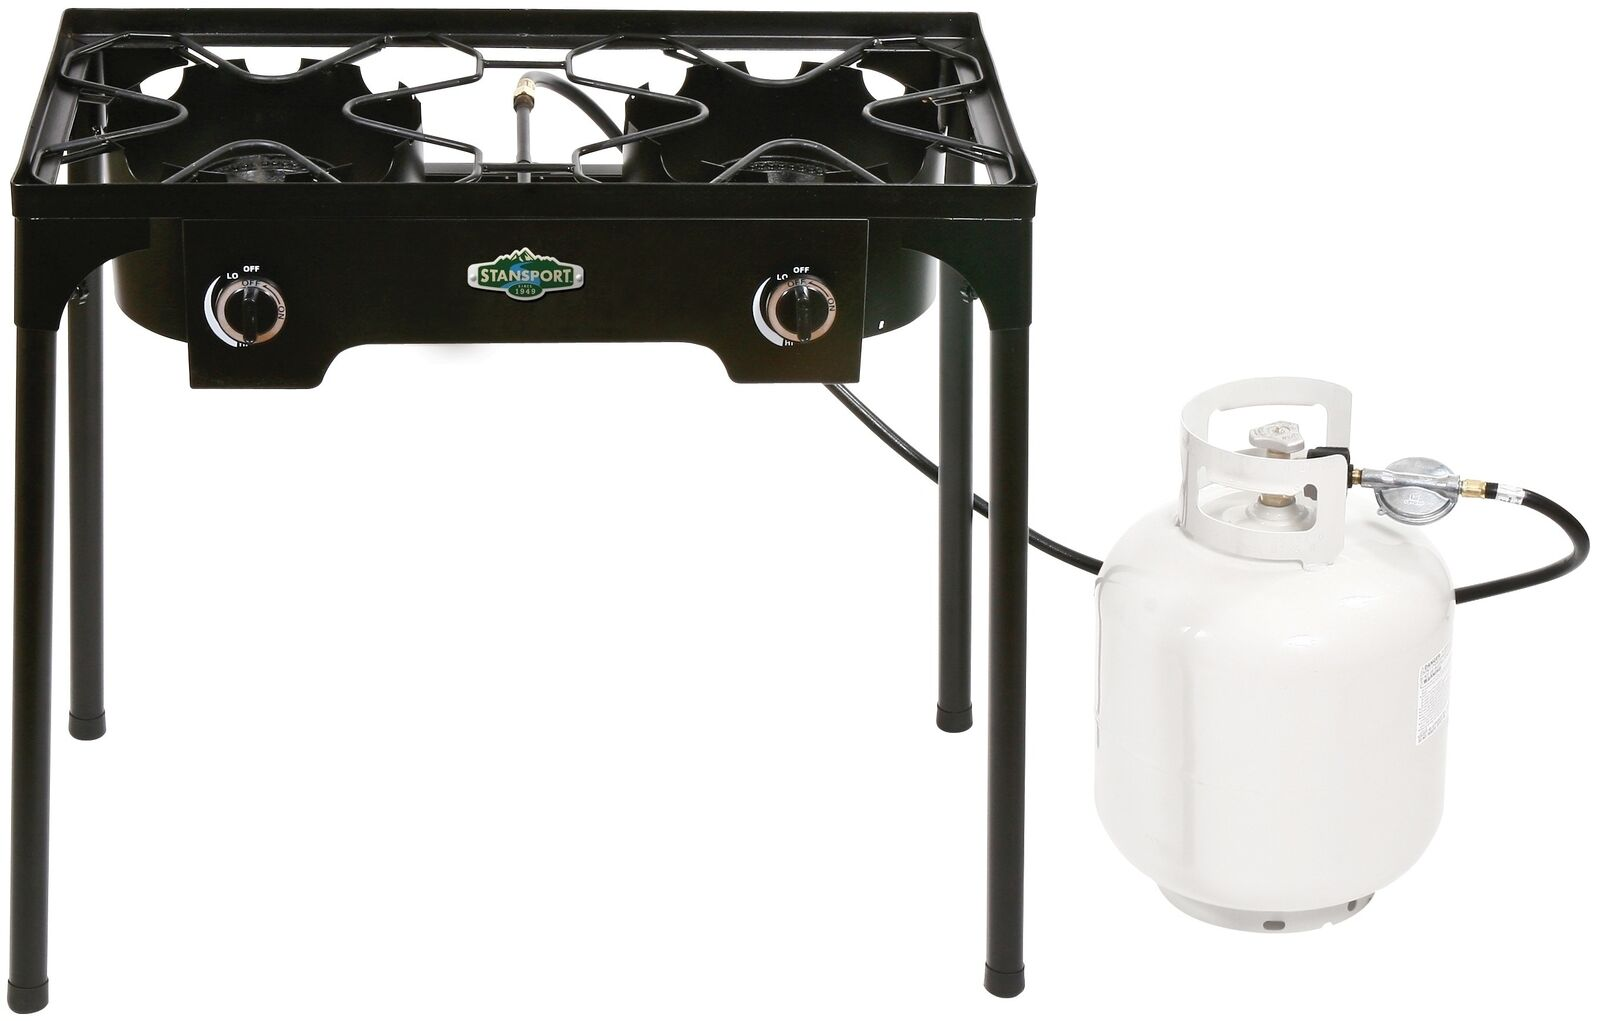 2 Burner  Camp Stove with Stand Outdoor Cooking Camping 35000 BTU Propane Burners  here has the latest